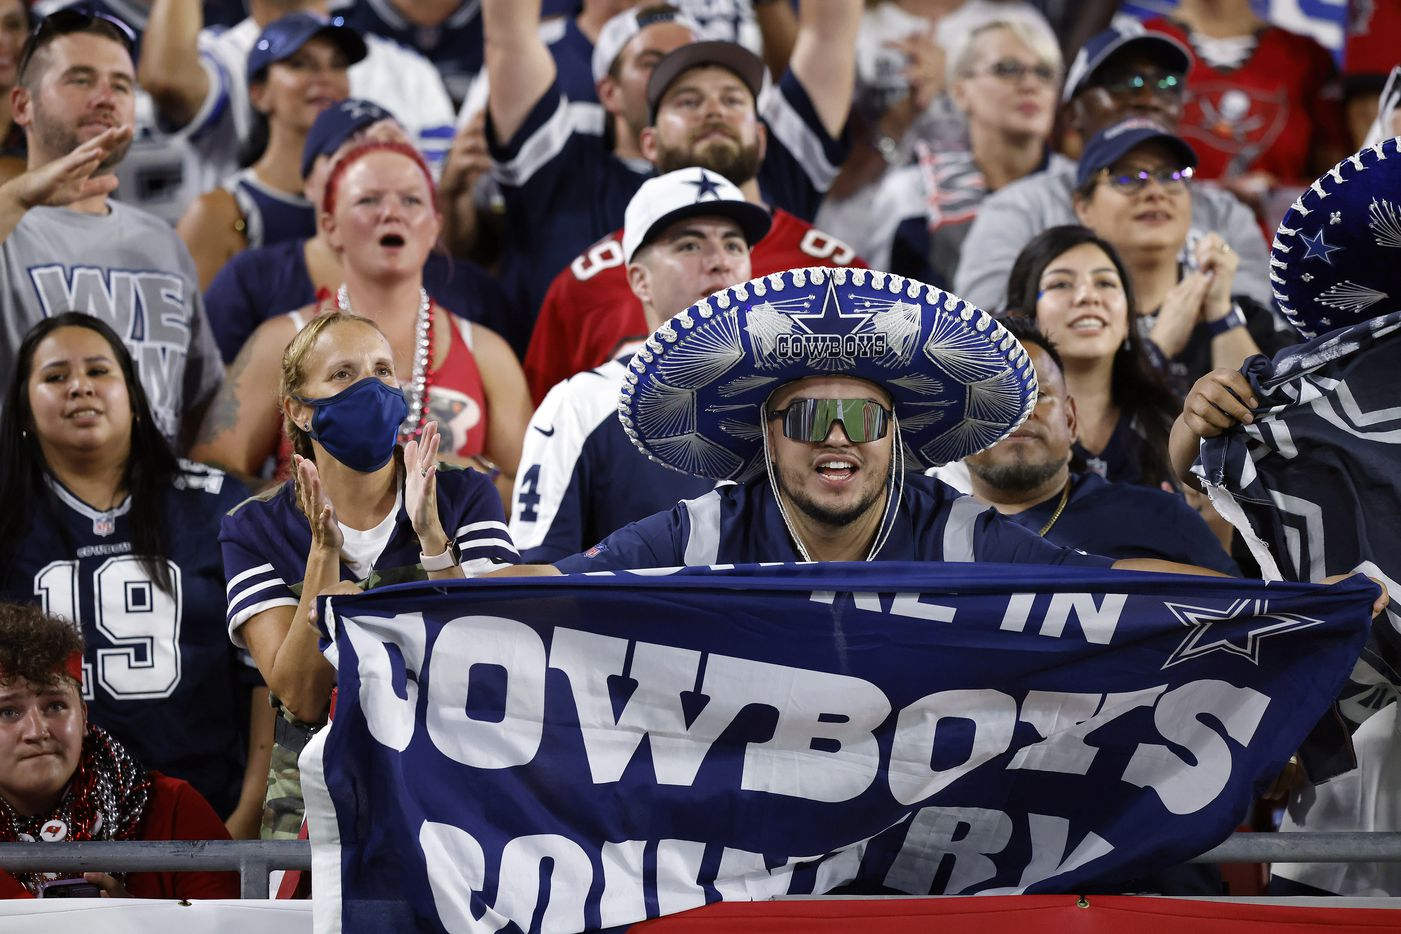 Dallas Cowboys fans celebrate a score in the first half against the Tampa Bay Buccaneers at Raymond James Stadium in Tampa, Florida, Thursday, September 9, 2021. The Cowboys faced the Tampa Bay Buccaneers in the NFL season opener. (Tom Fox/The Dallas Morning News)